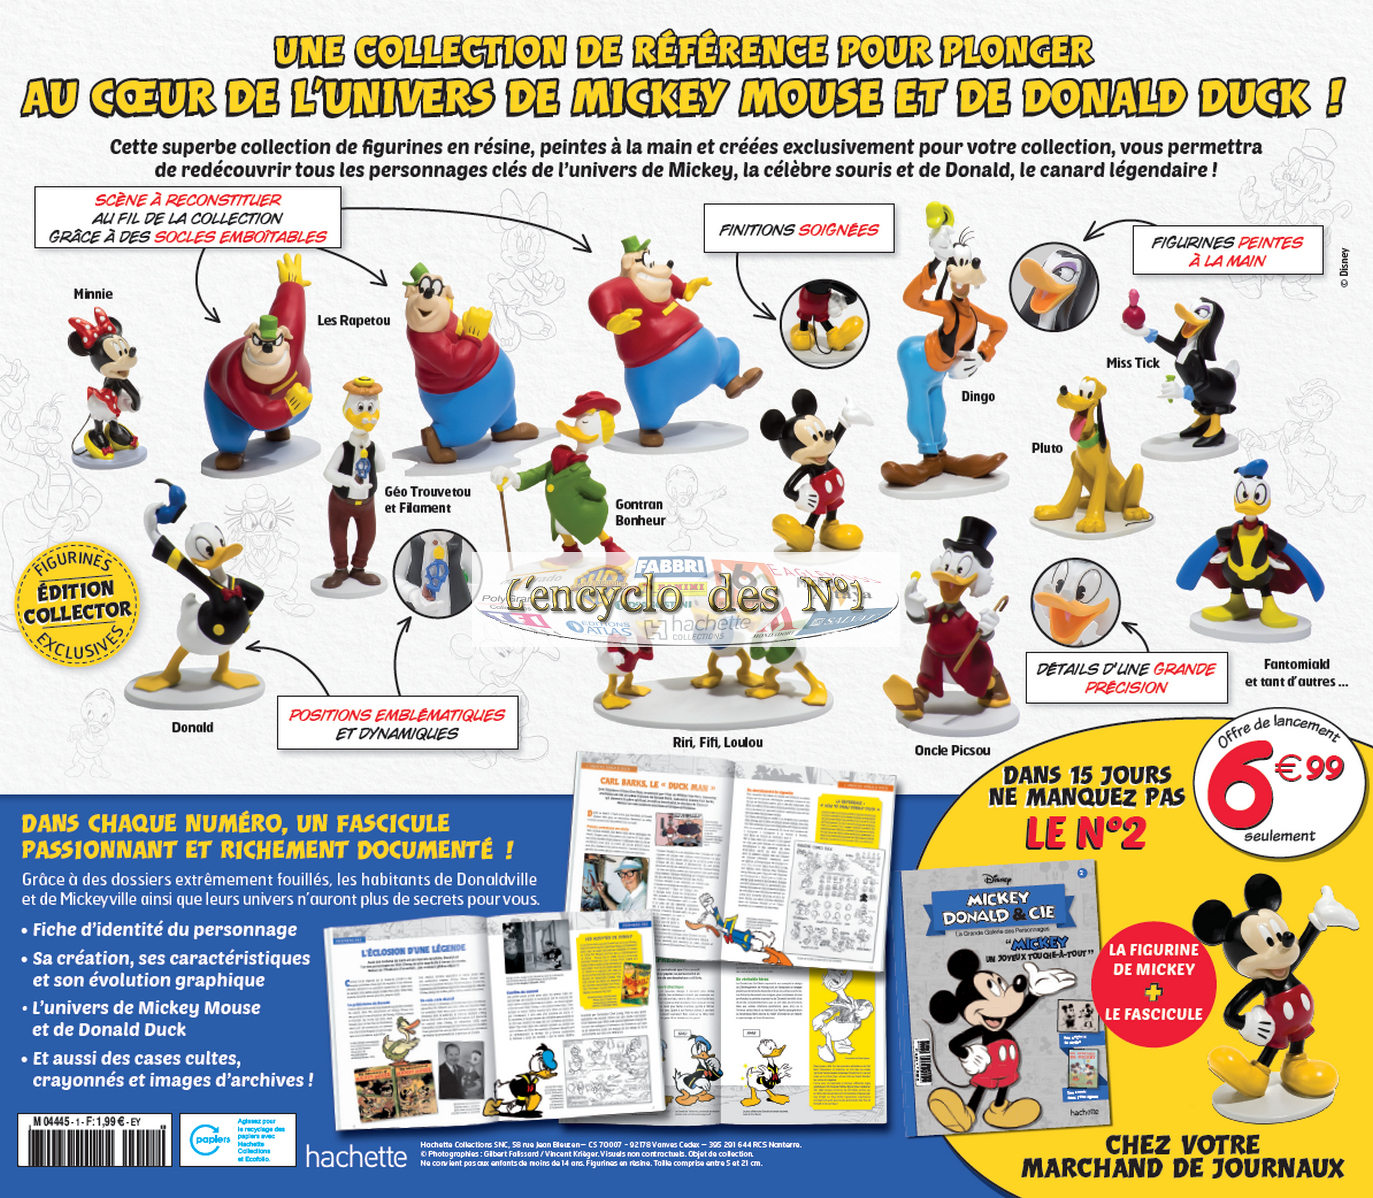 N° 1 Mickey Donald & Cie - Hachette Collections - 12/2019 190111085858113565